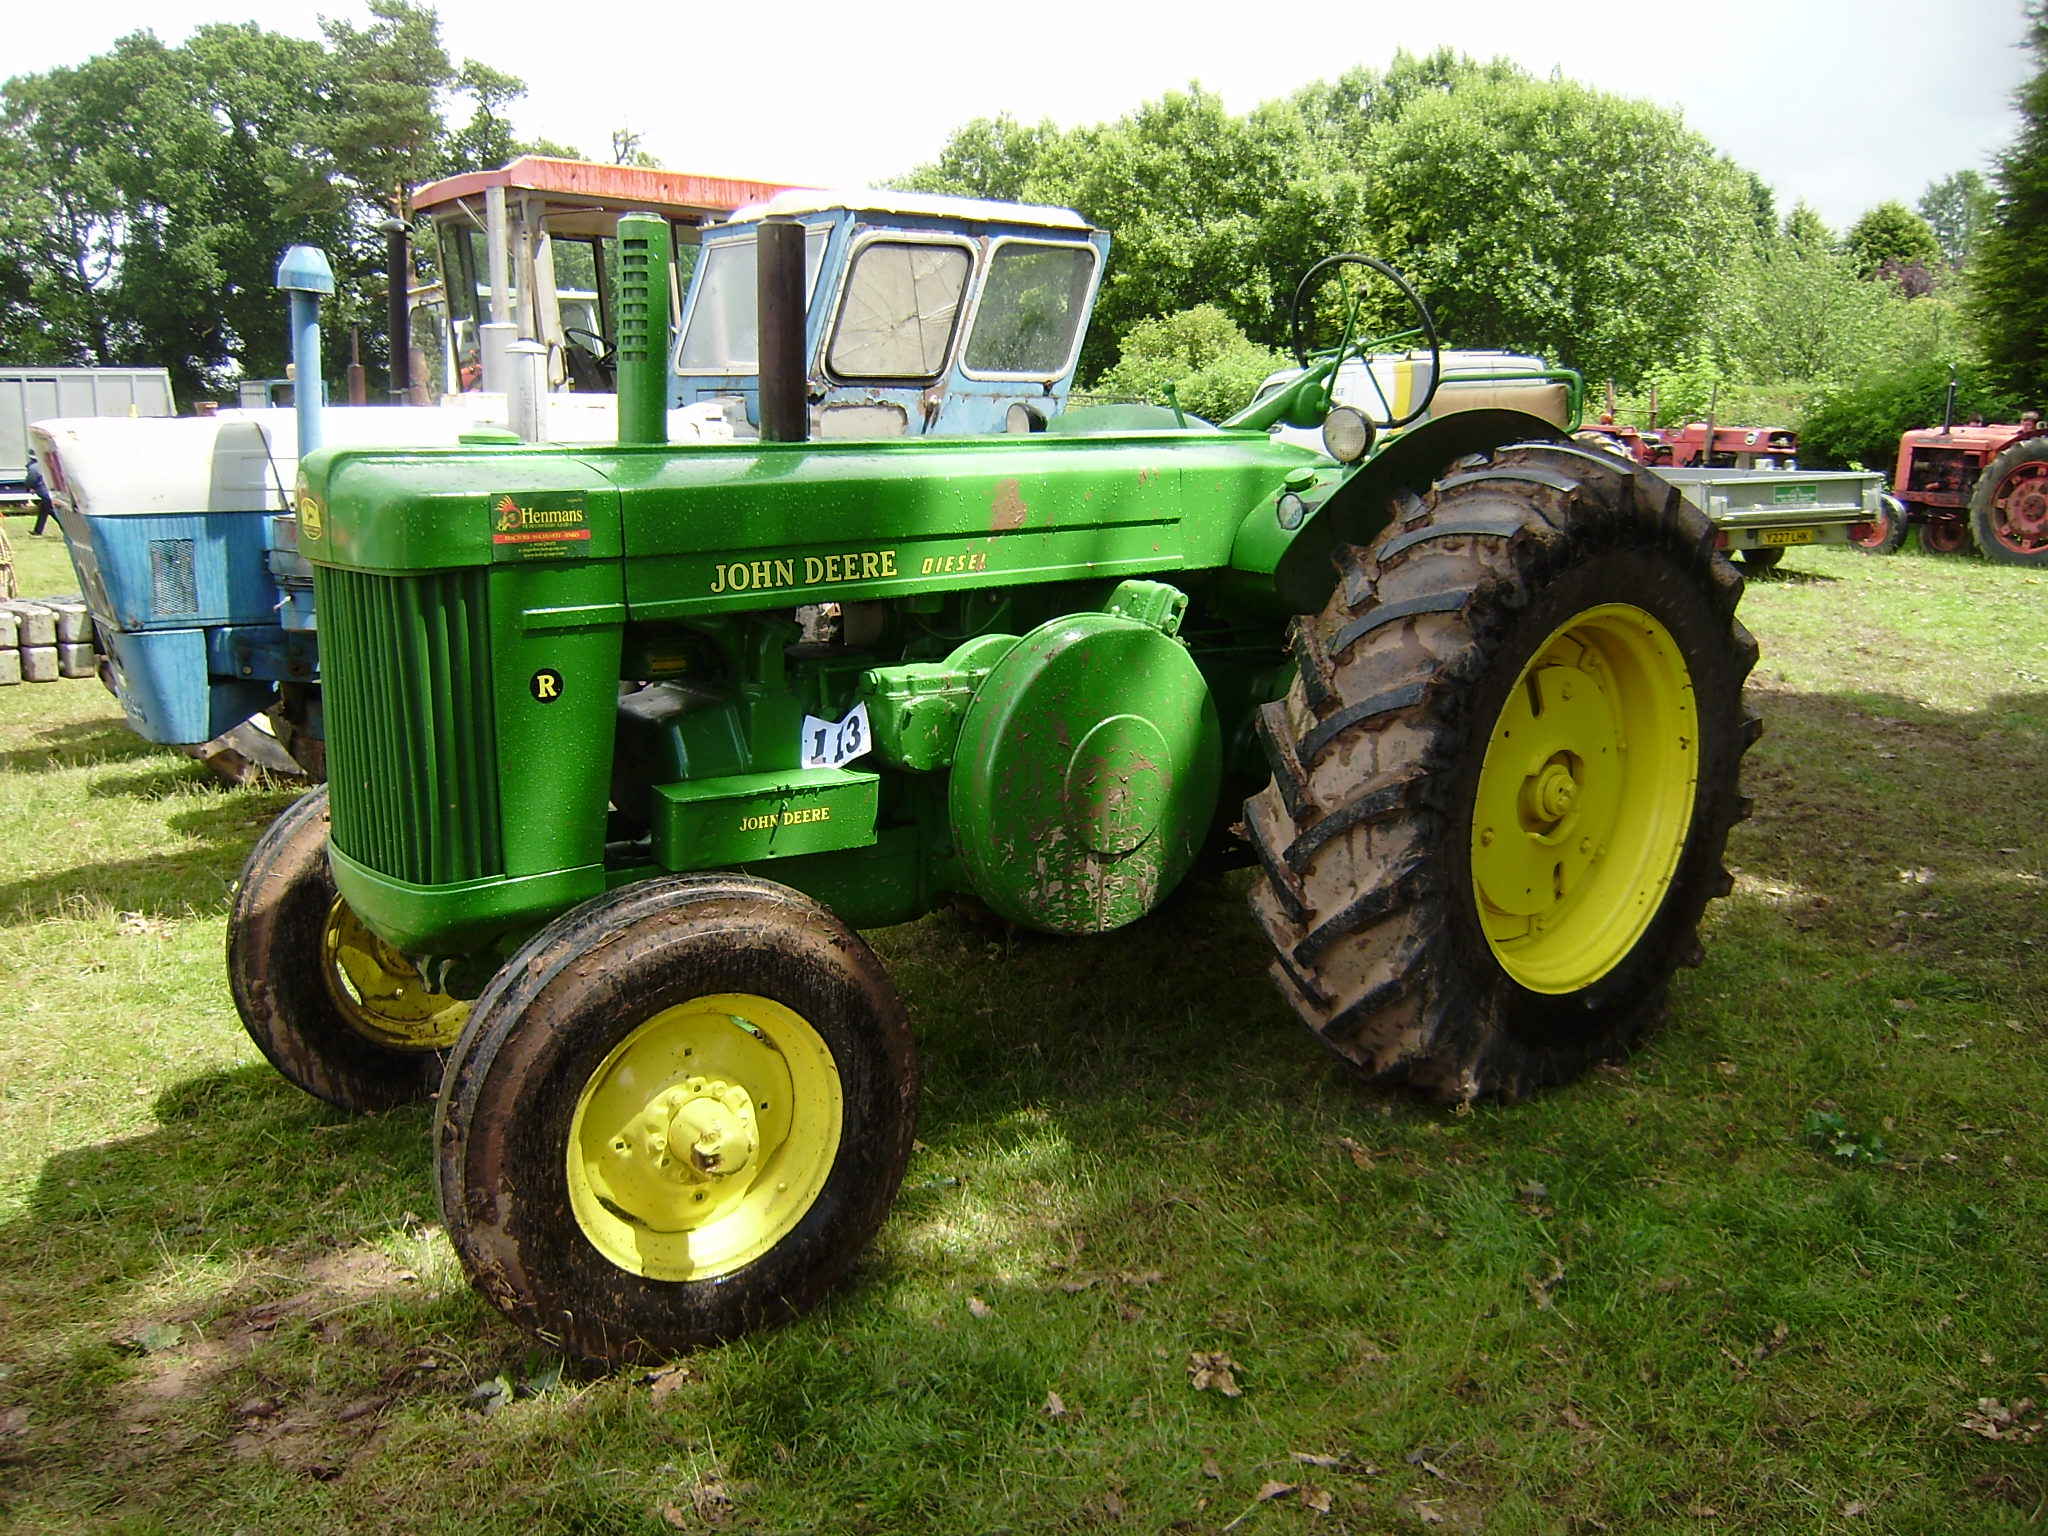 List Of John Deere Tractors Tractor Amp Construction Plant